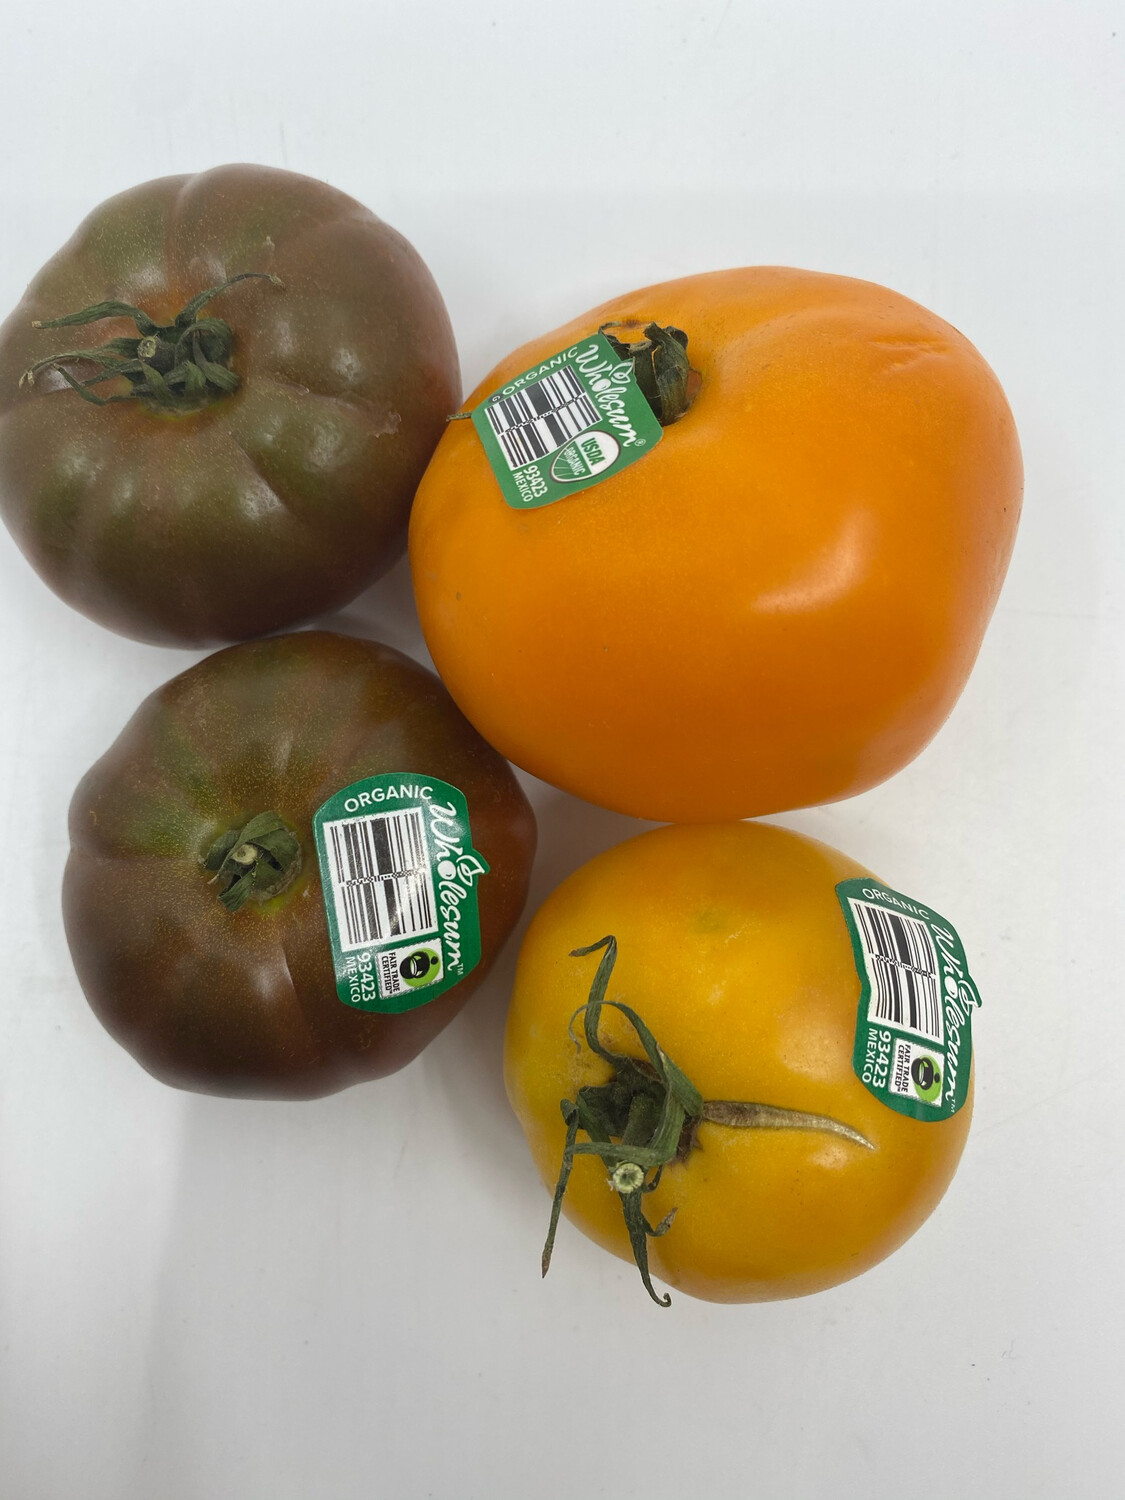 Pan's Forrest organic not certified heirloom tomatoes (2 pounds ~ 3 large tomatoes)